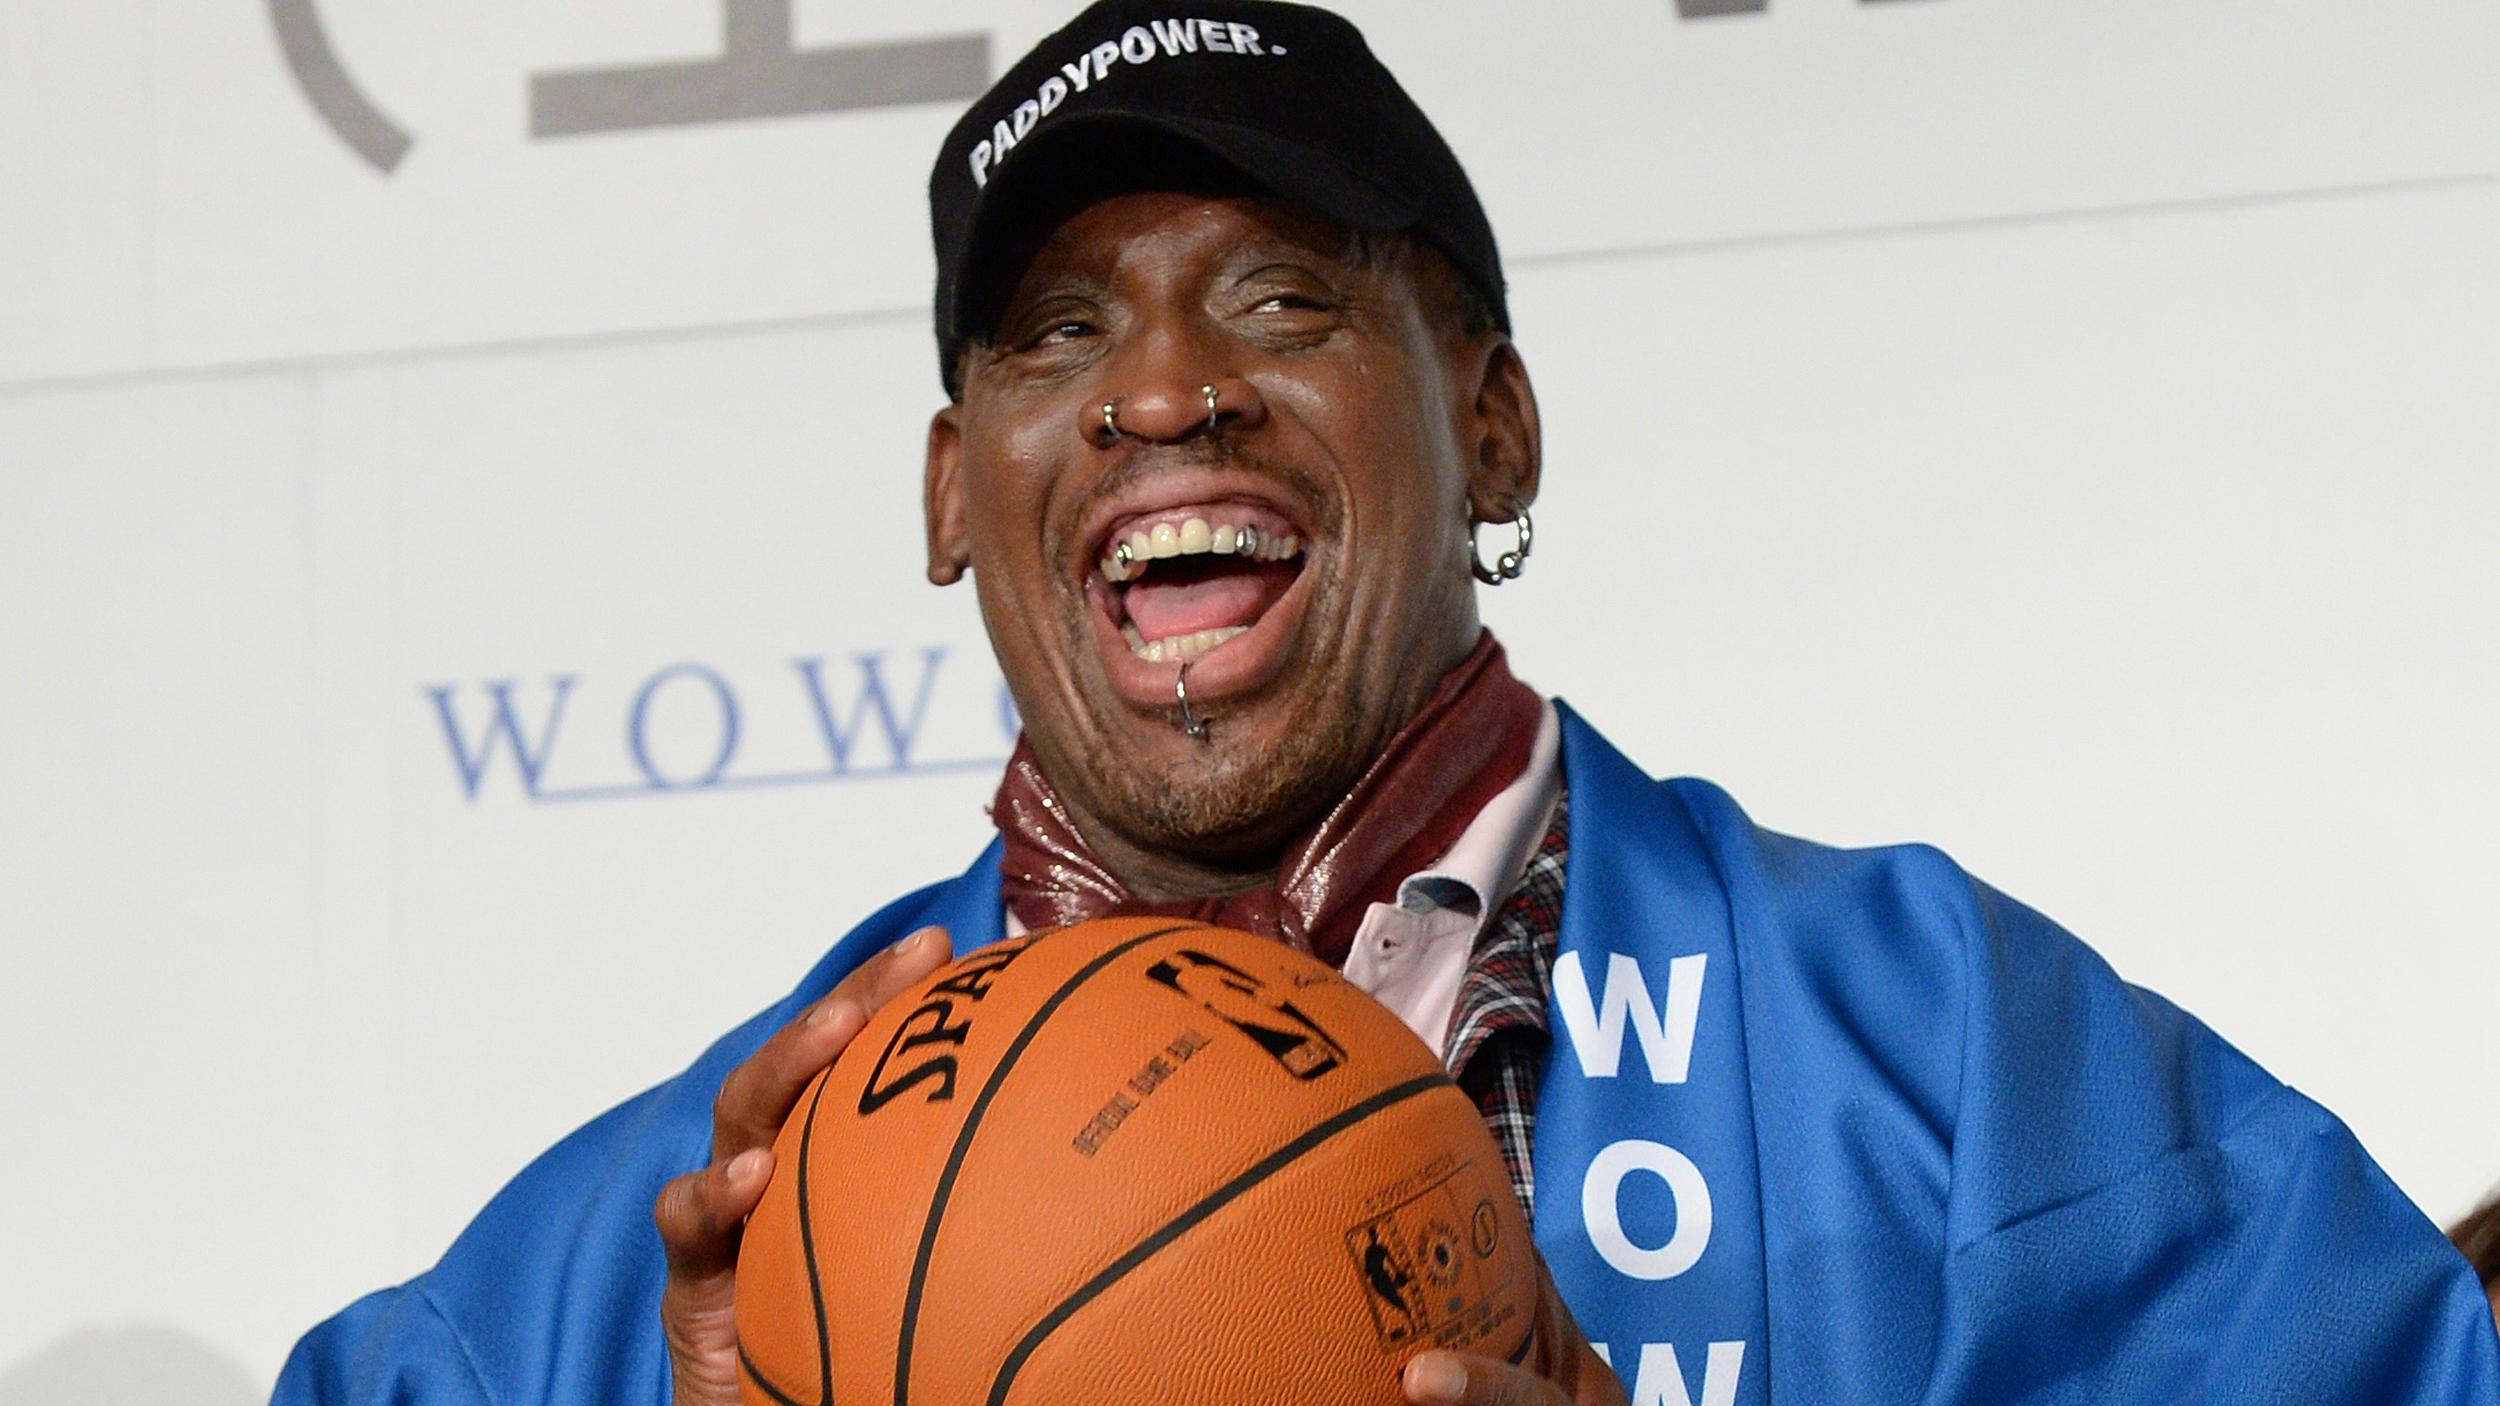 Dennis Rodman Net Worth, Wedding Dress, Stats, Height, Wife, Gay or ... Dennis Rodman Wedding Dress